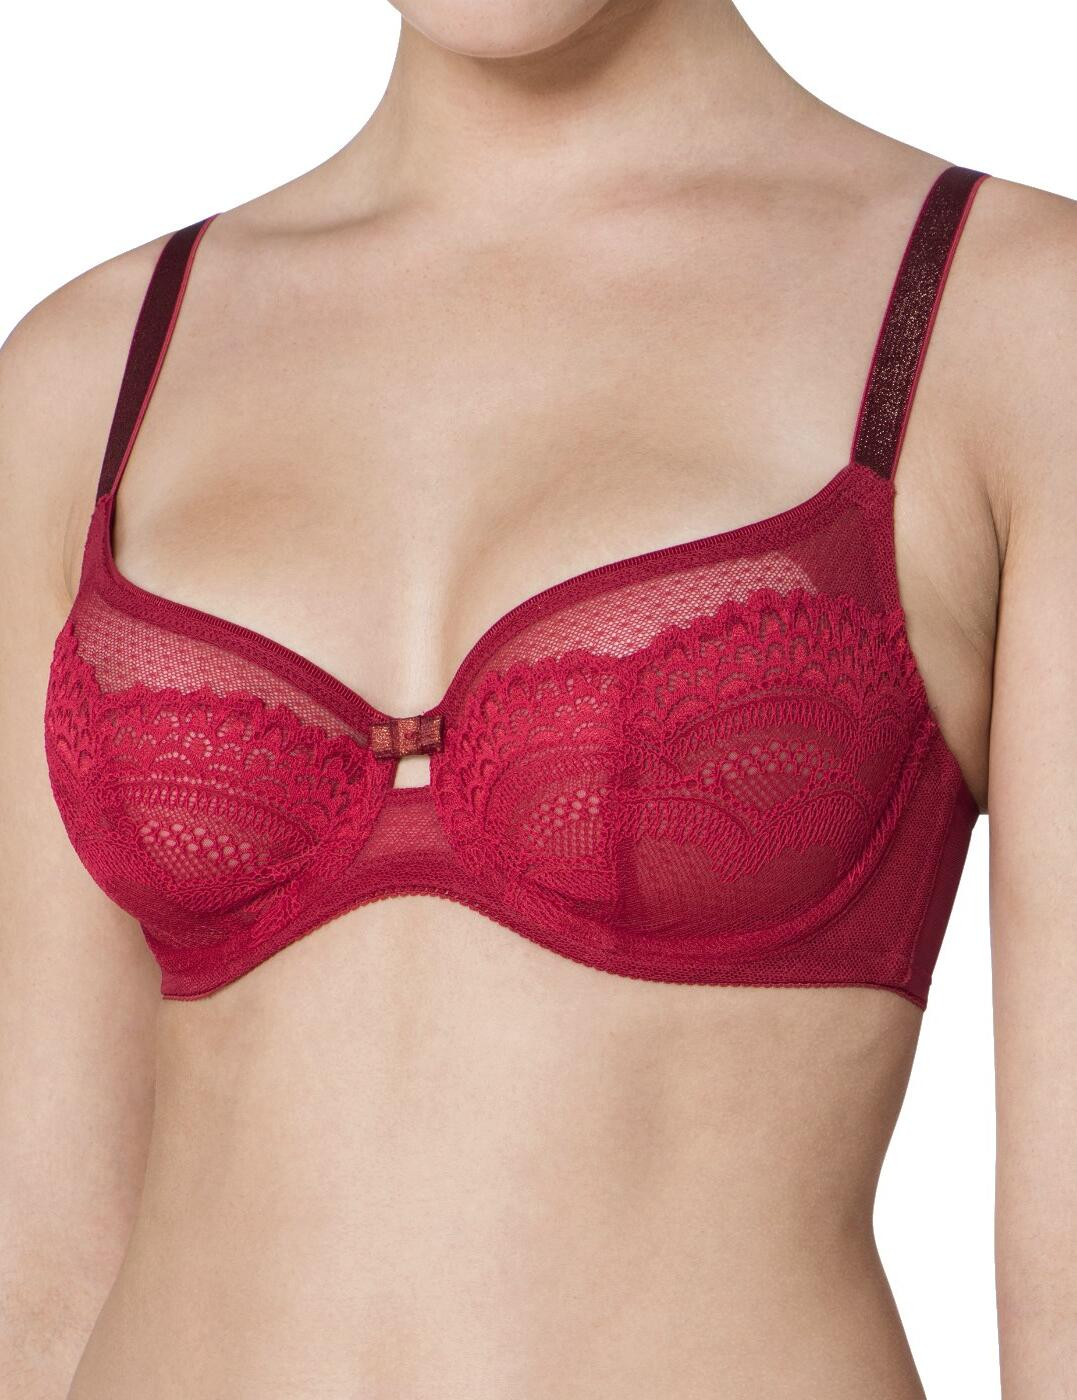 10156816 Triumph Beauty-Full Darling Bra - 10156816 Royal Red